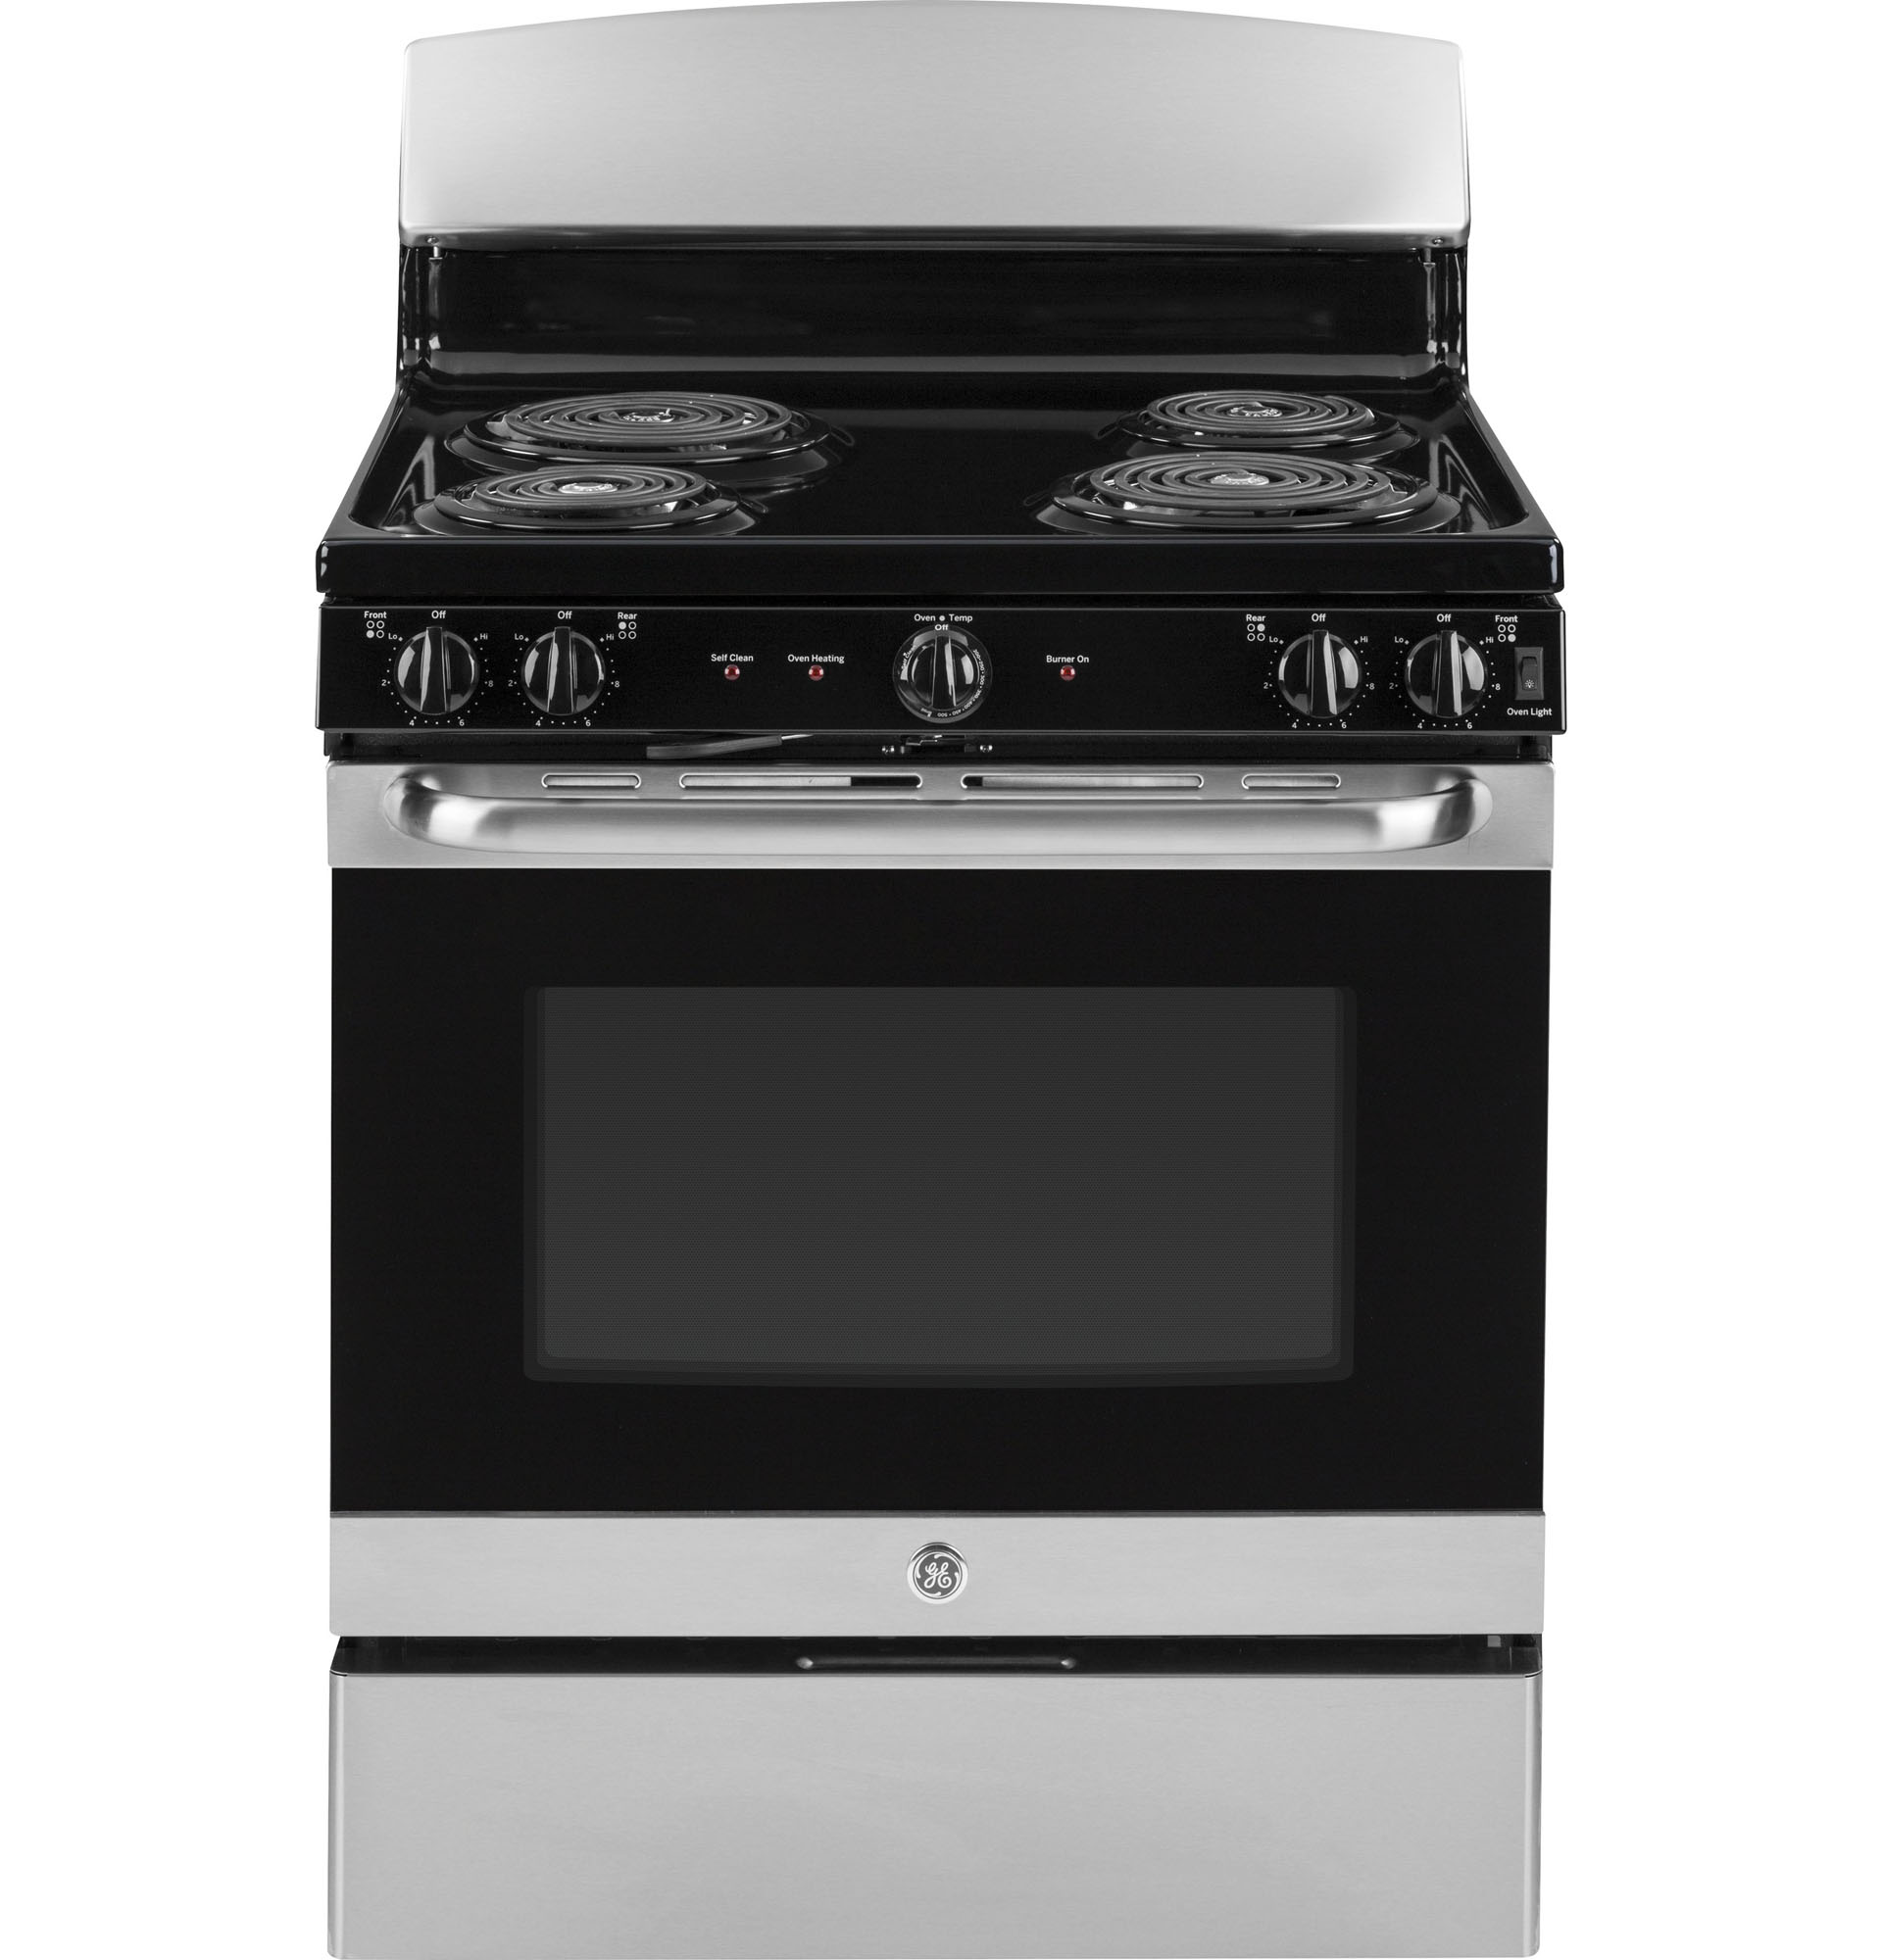 GE Appliances JB450RKSS 30 Freestanding Electric Range w/Front Controls - Stainless Steel